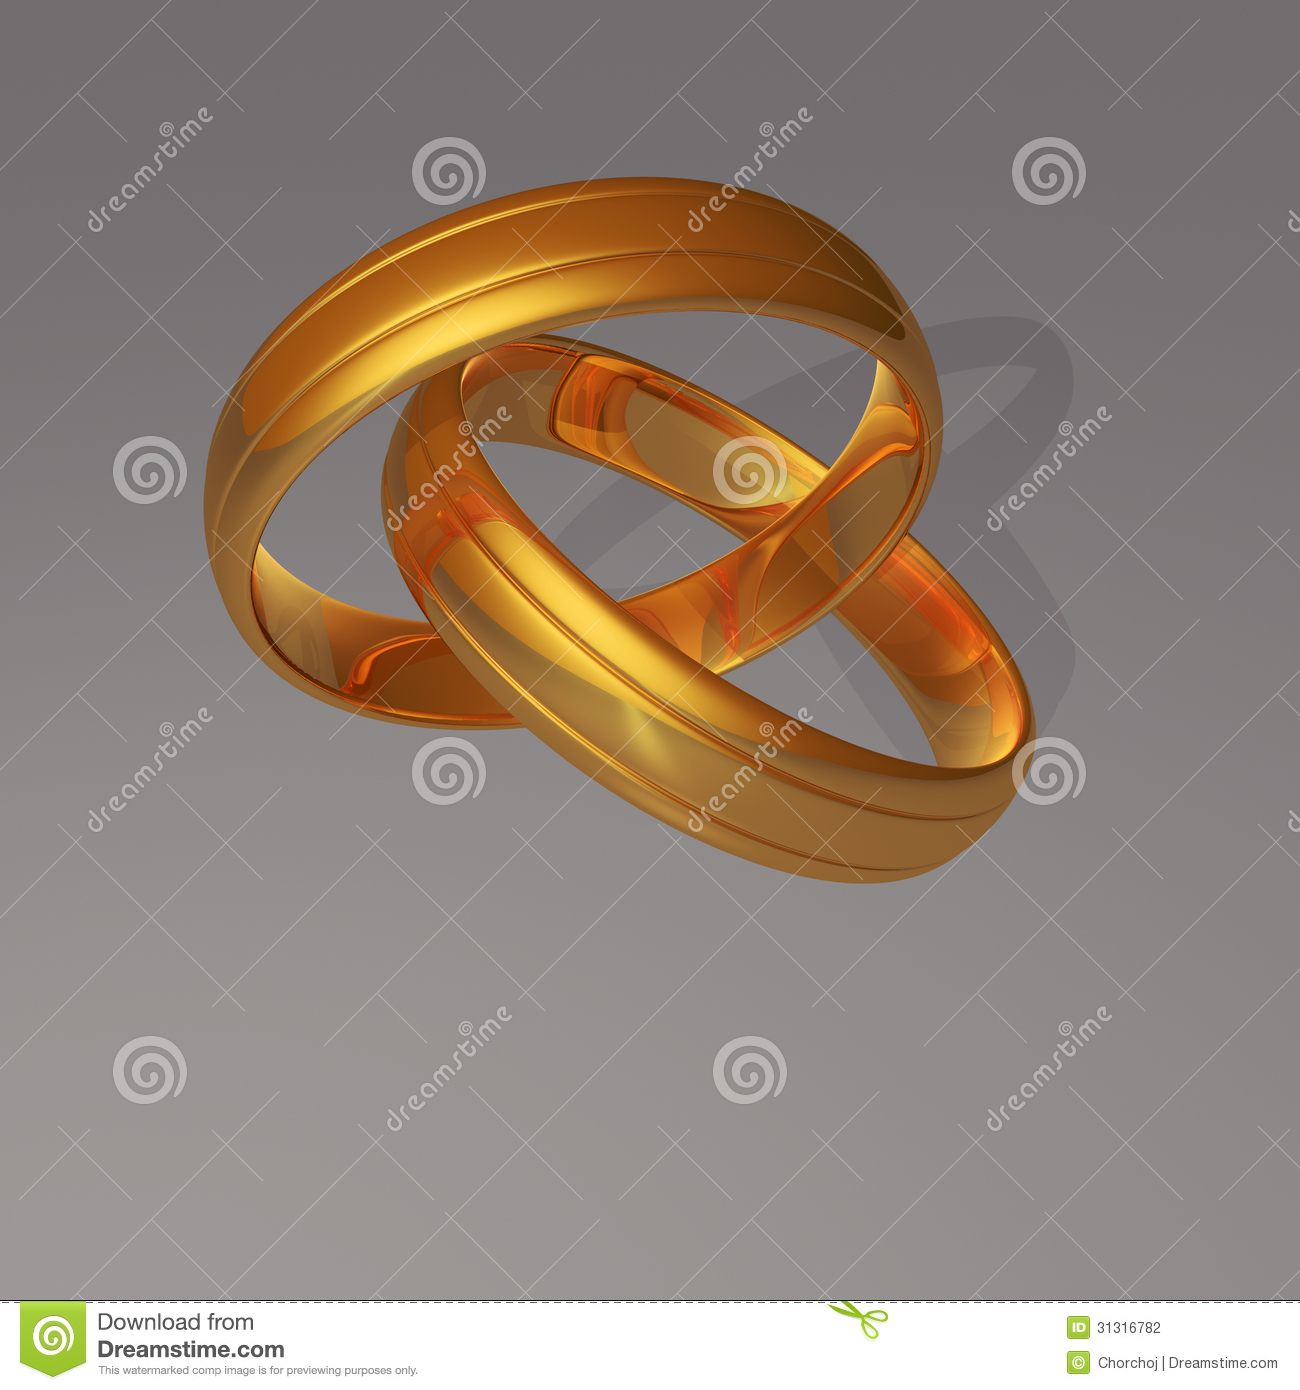 Royalty Free Stock Photo  Download Wedding Rings tangled  Wedding Rings tangled Stock Photography   Image  31316782. Tangled Wedding Ring. Home Design Ideas